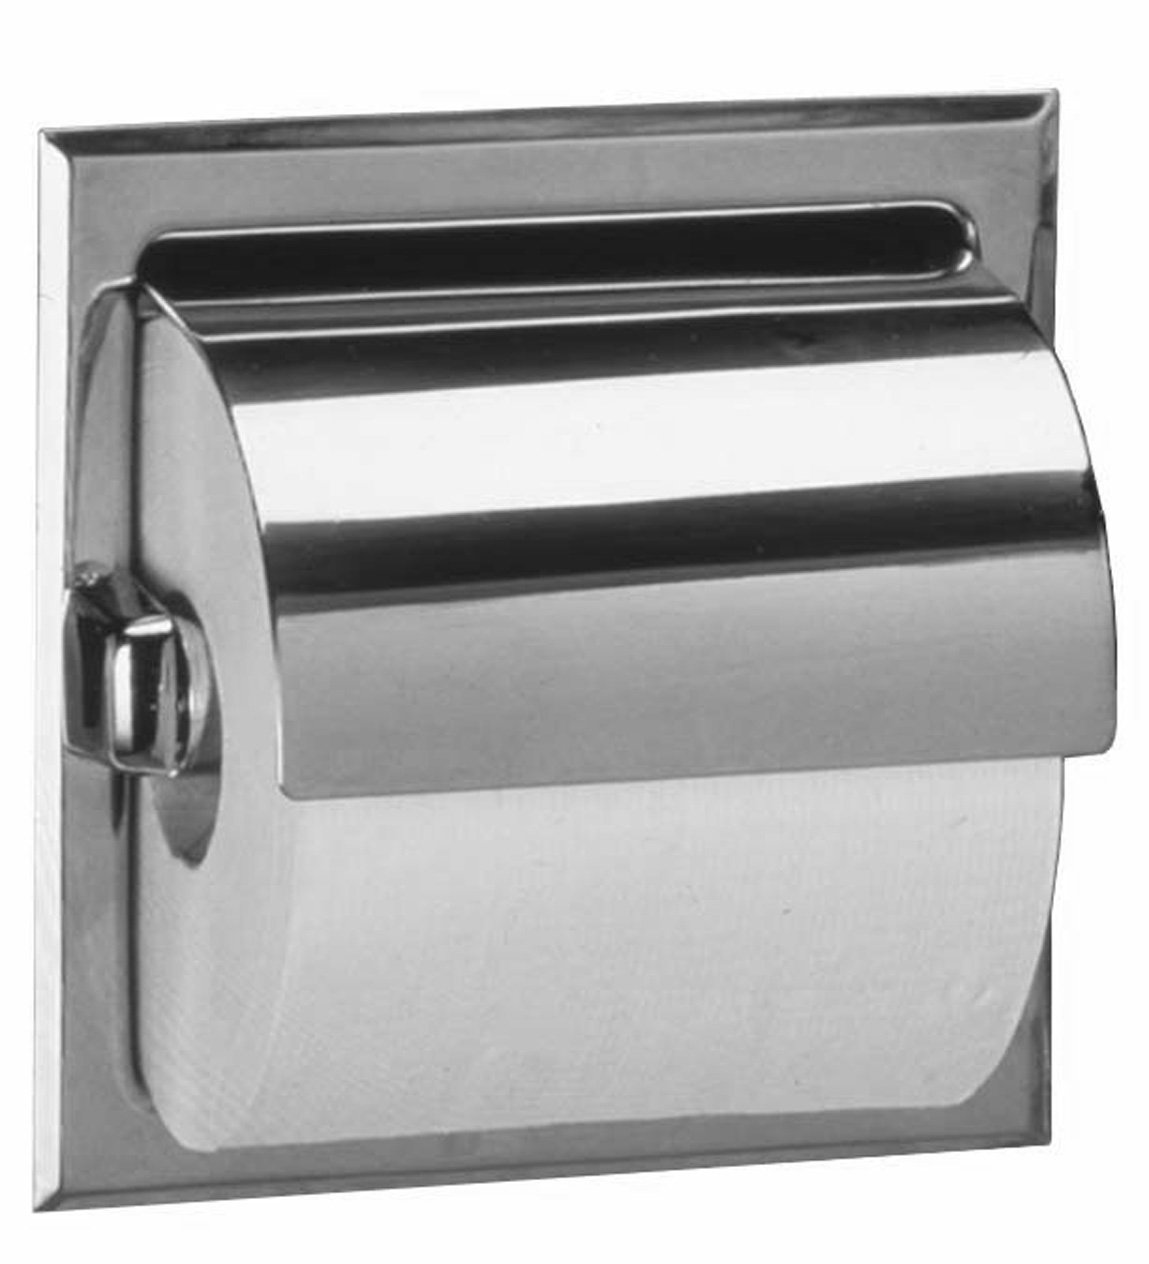 Bobrick 6697 Stainless Steel Recessed Toilet Tissue Dispenser with ...